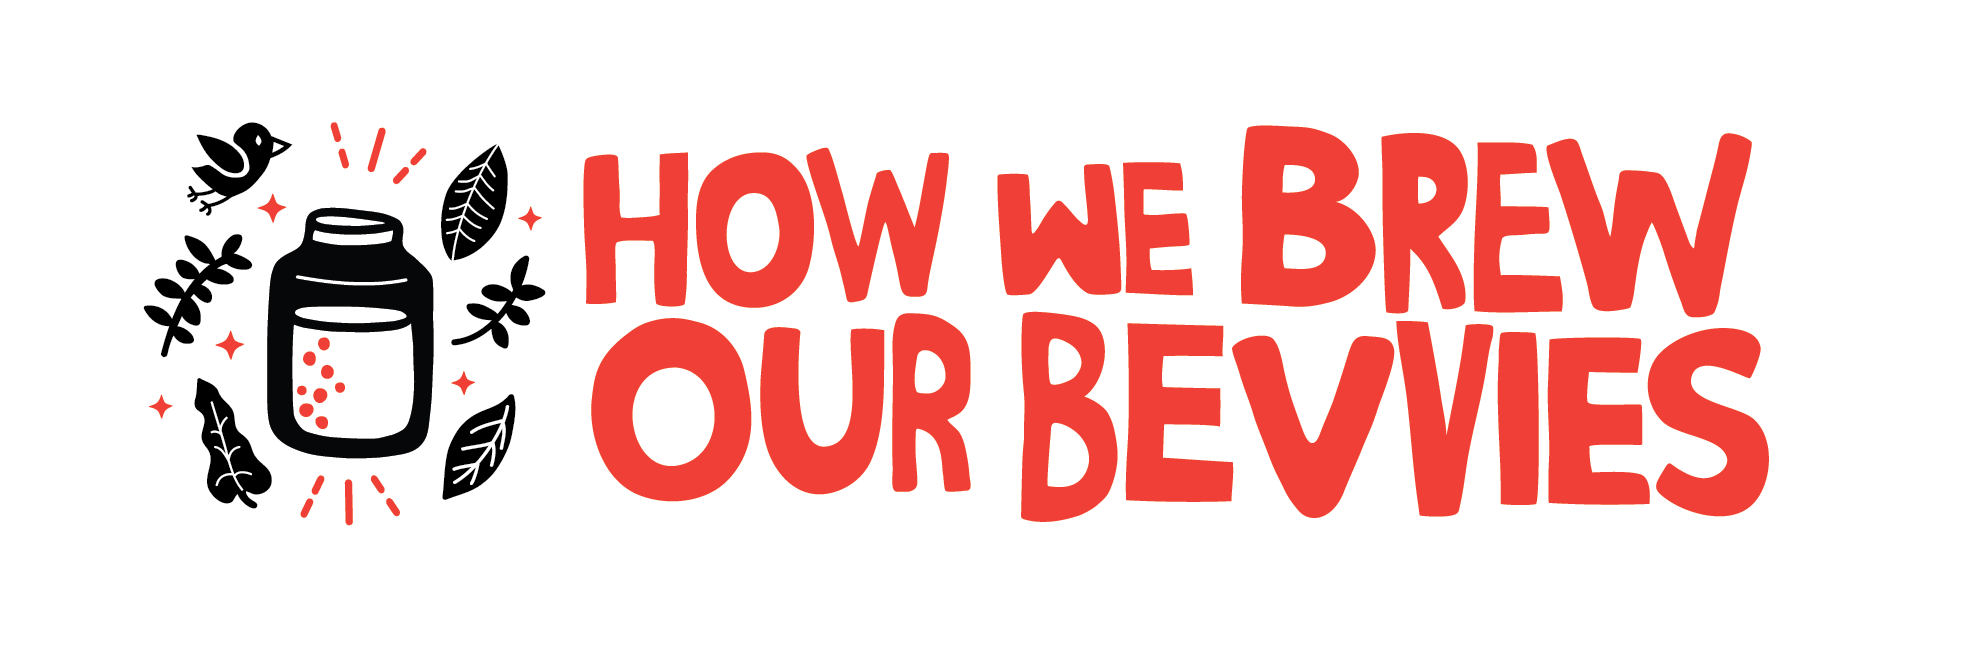 Remedy Drinks - How we brew our bevvies